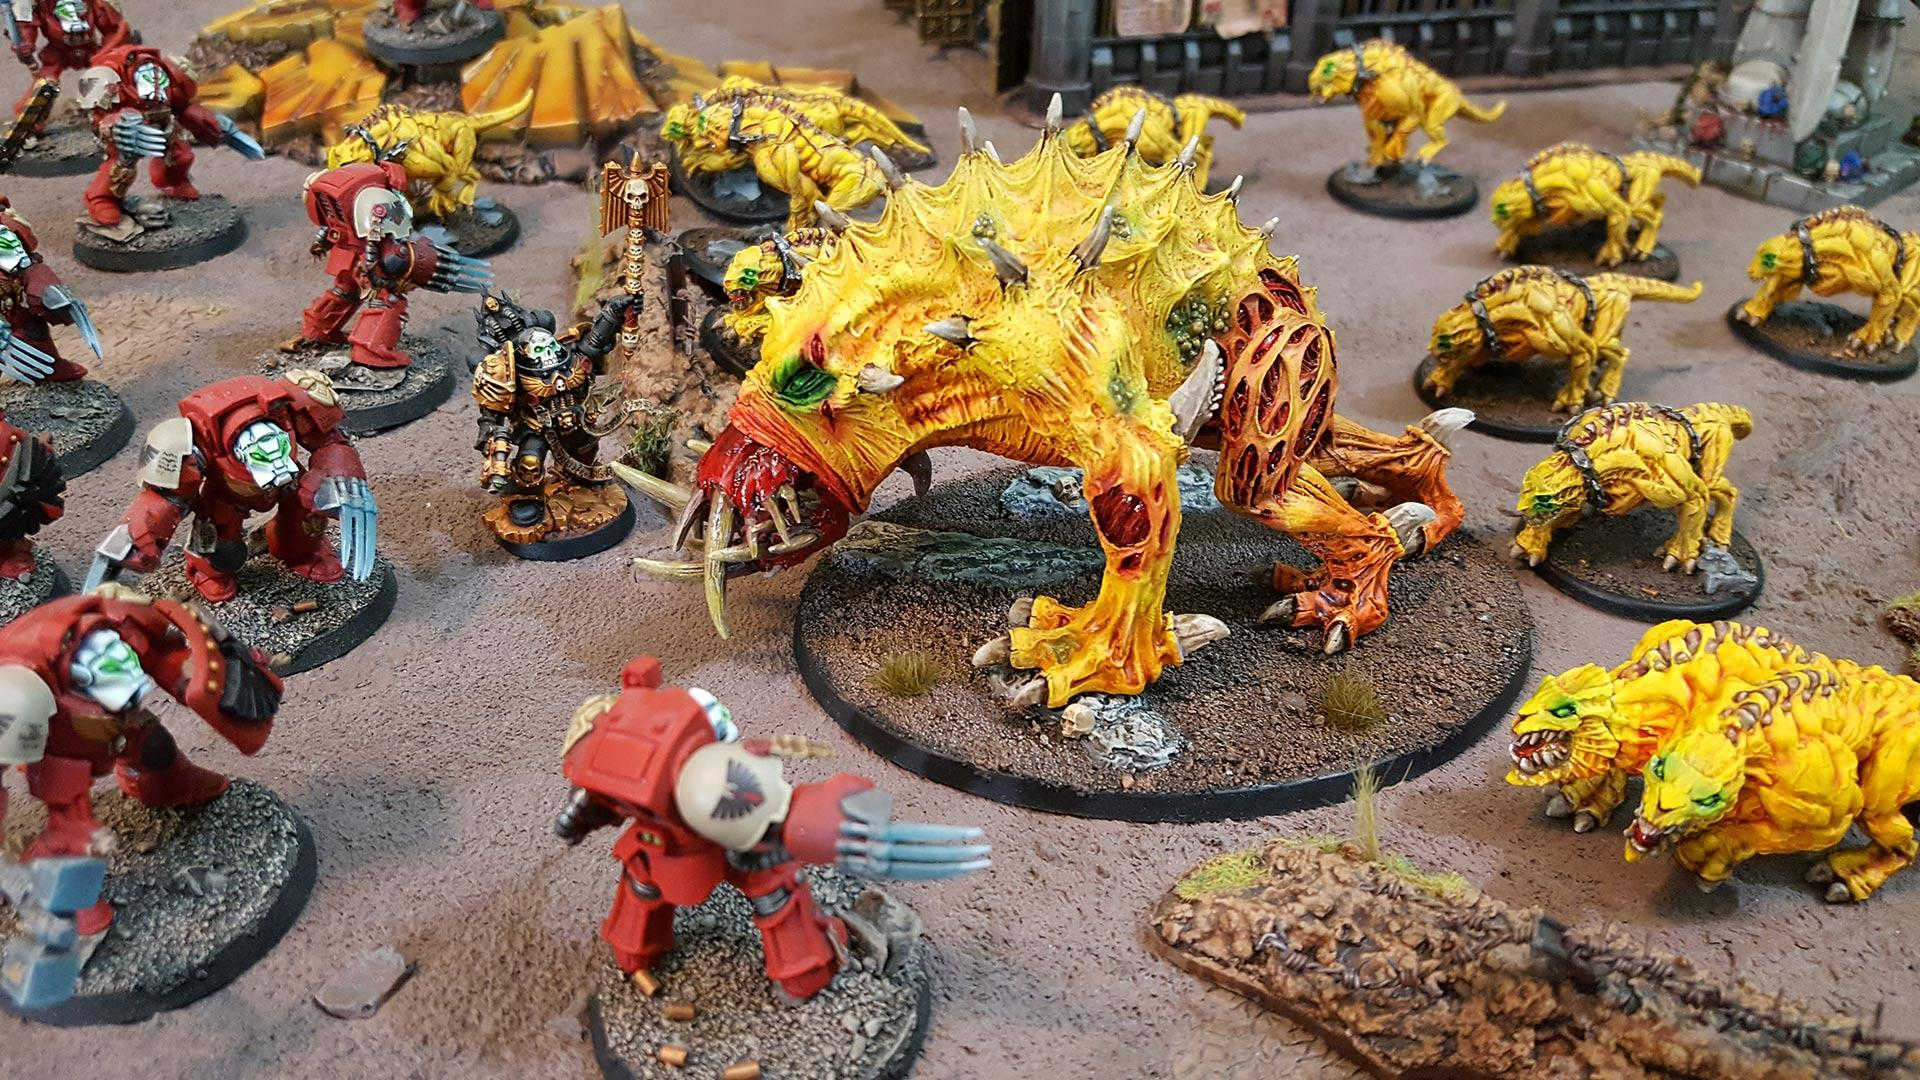 Chaos, Chaos Spined Beast, Daemons, Forge World, Out Of Production, Spined Beast, Spined Chaos Beast, Yellow